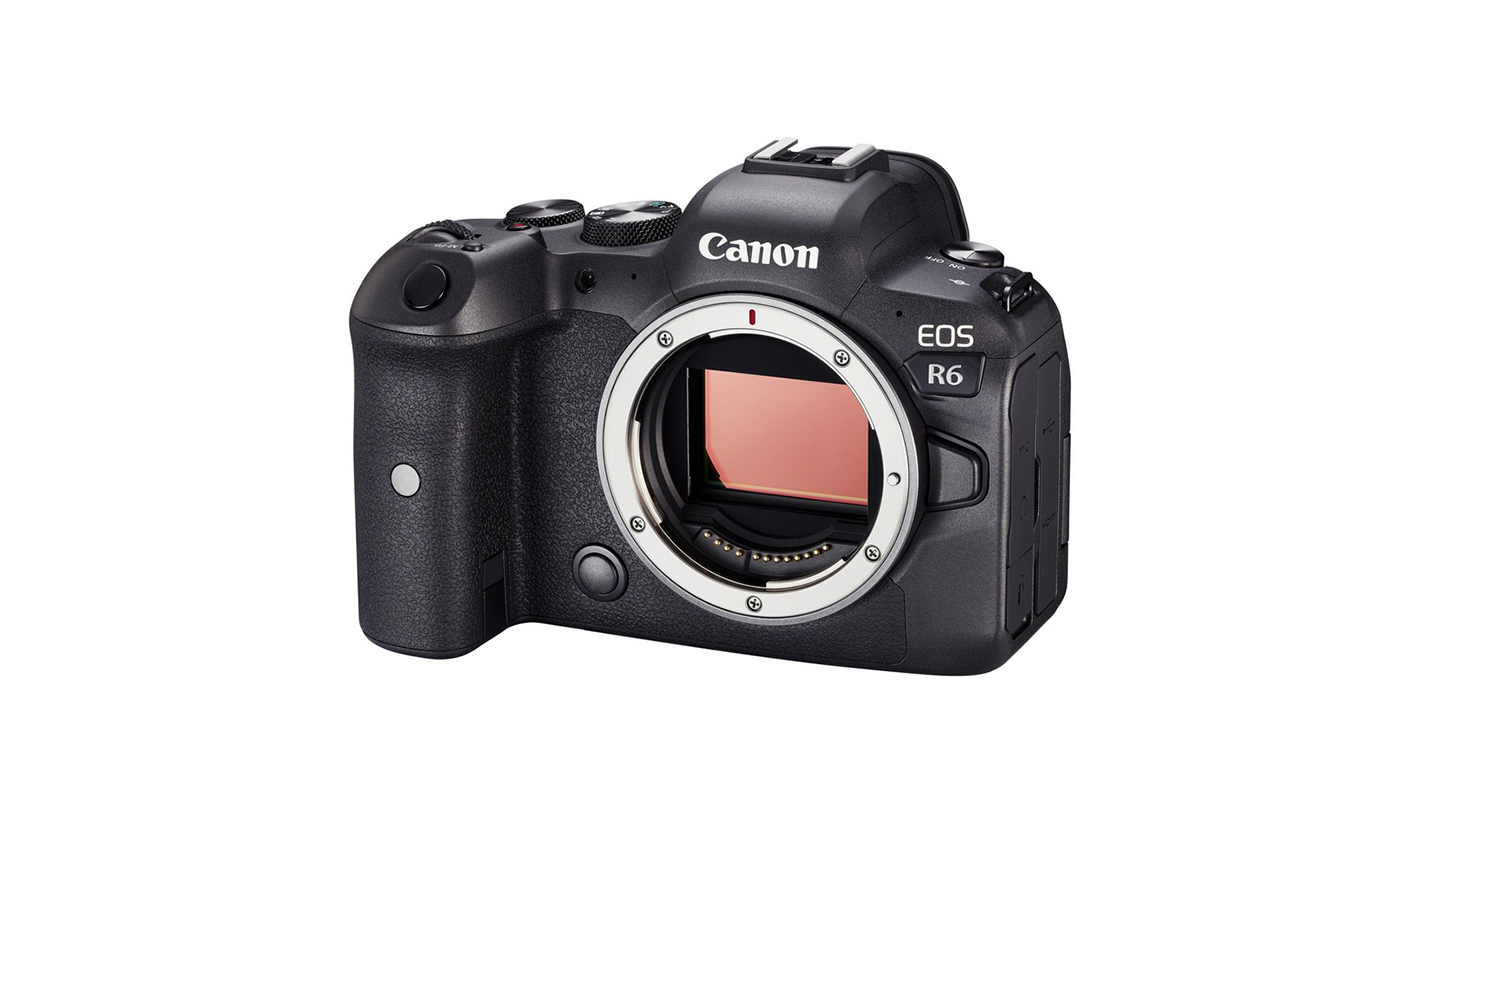 The Canon R6 is also going to be a very popular camera with pros and amateurs alike.